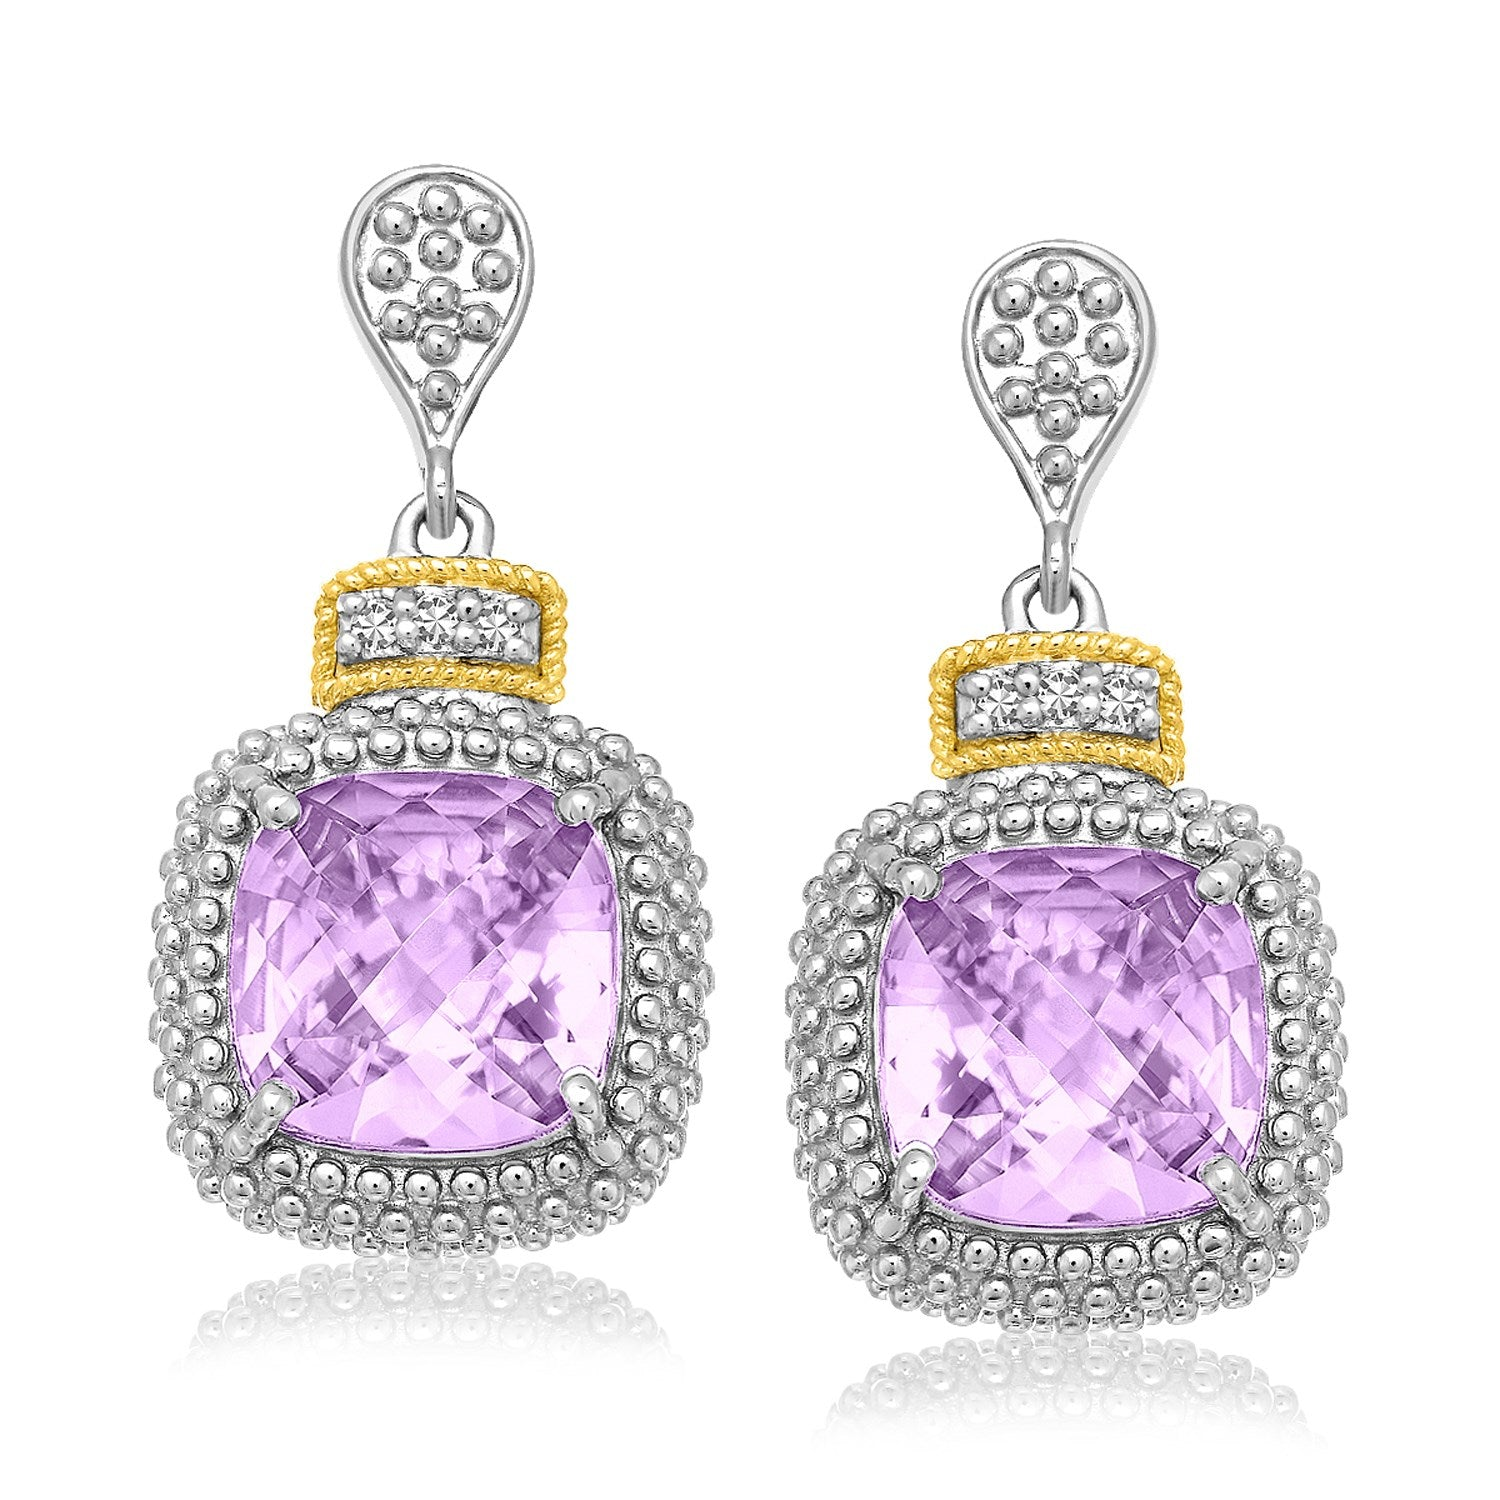 Fancy Cushion Amethyst and Diamond Drop Earrings in 18k Yellow Gold and Sterling Silver